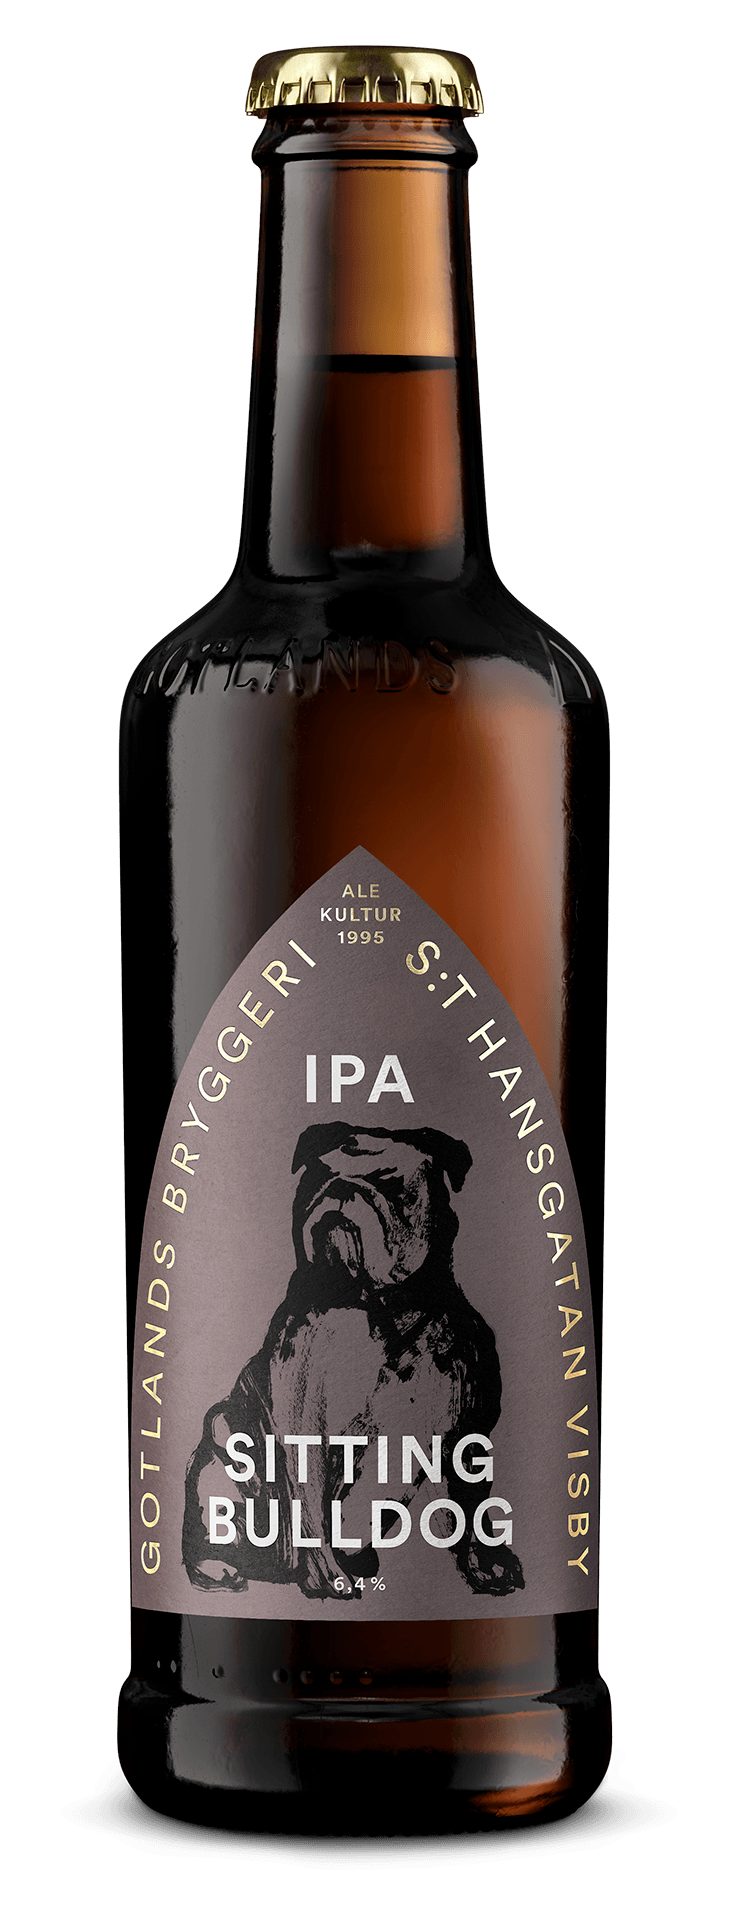 Sitting Bulldog IPA